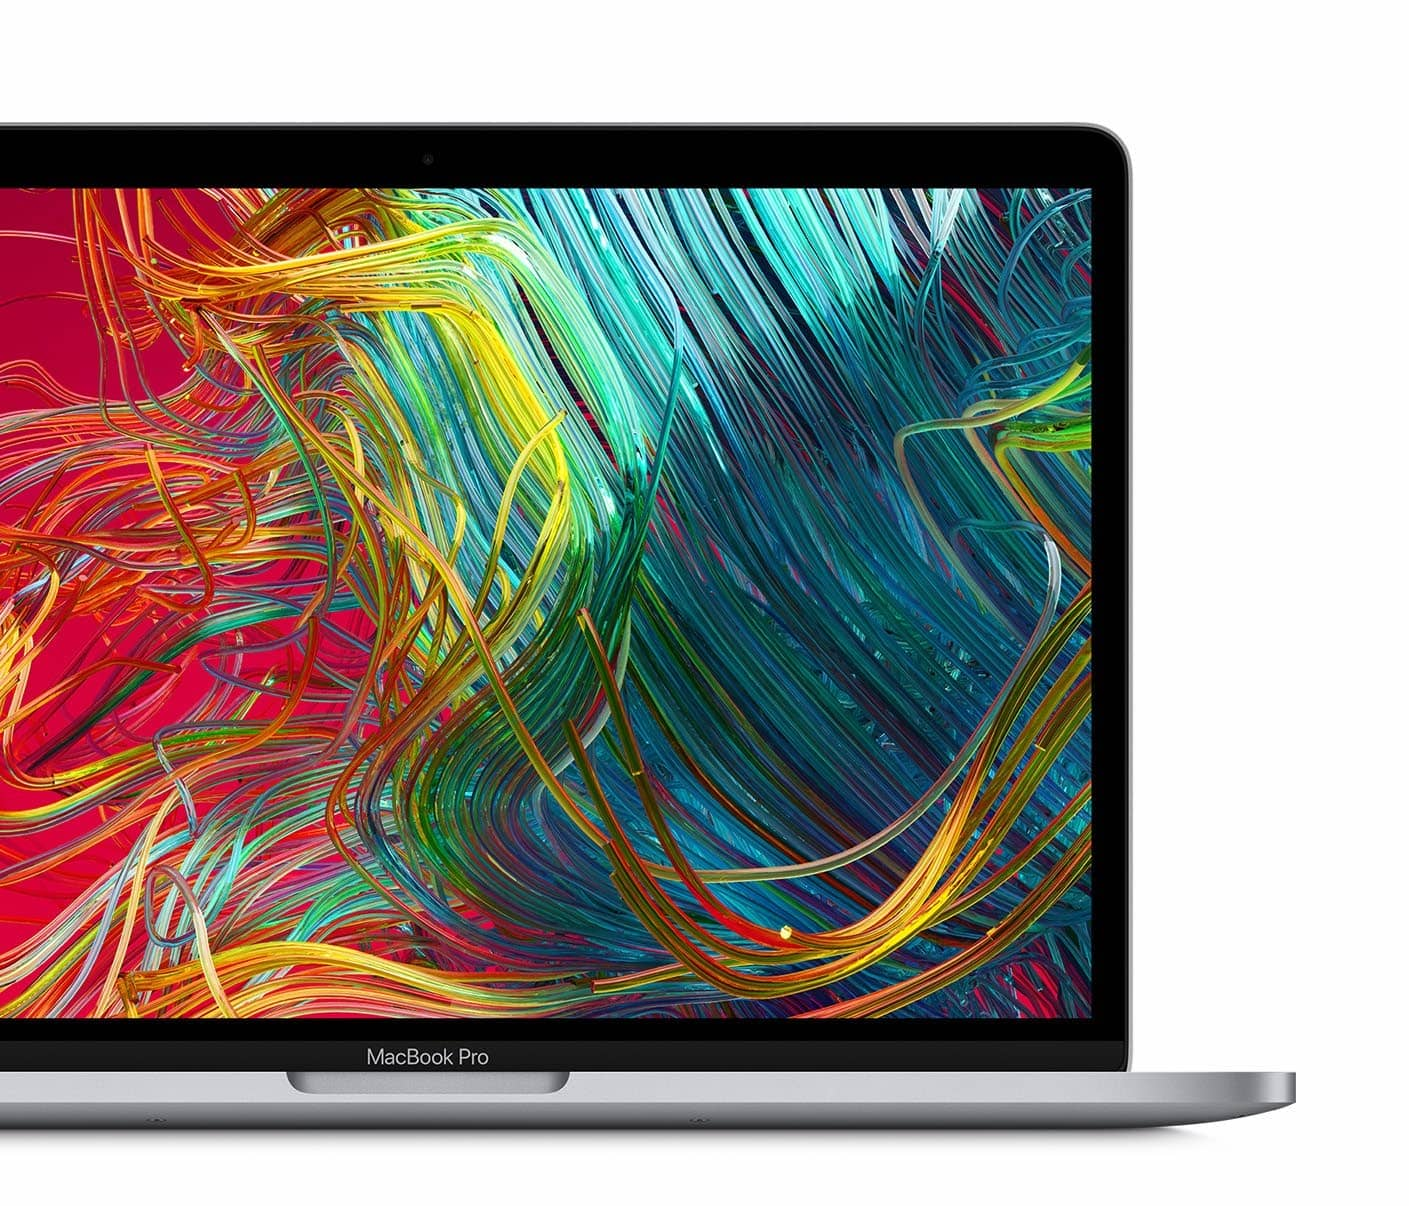 13-INCH MACBOOK PRO (MID2020) REVIEW: $1,799 MODEL DELIVERS MODEST CPU AND BIG GRAPHICS BOOST